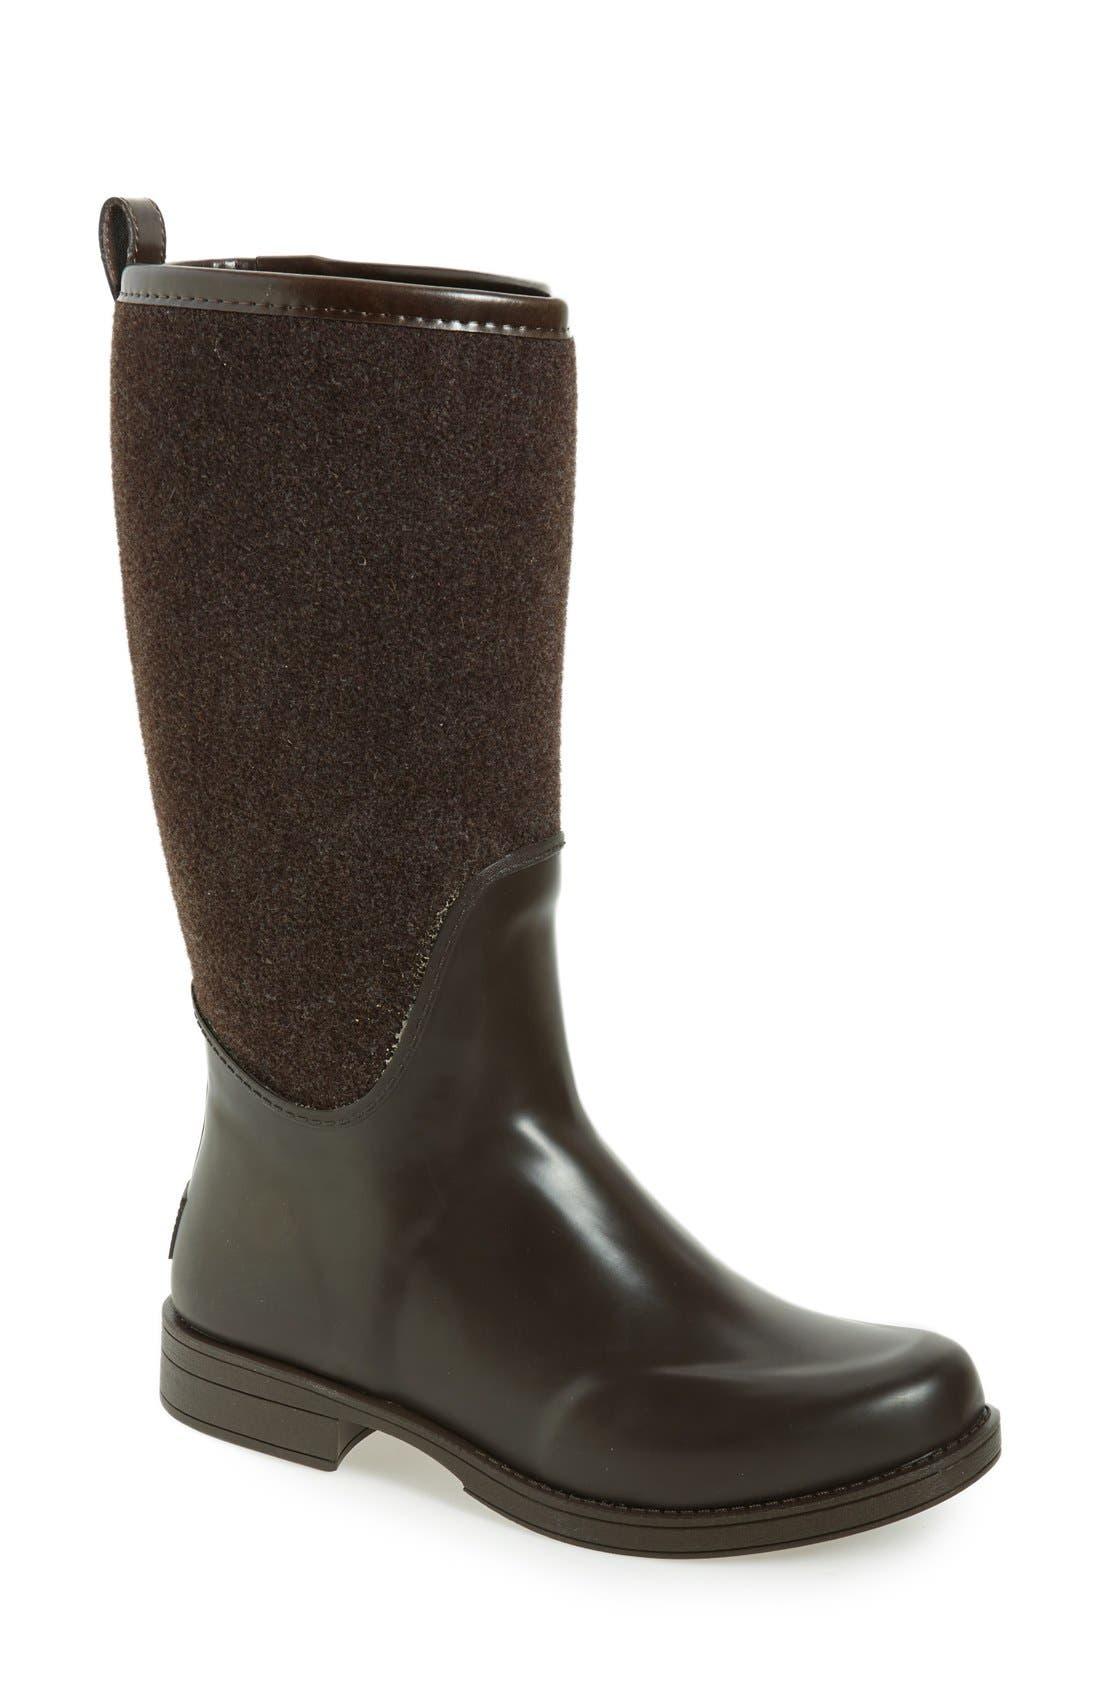 Main Image - UGG® Reignfall Waterproof Rain Boot (Women)